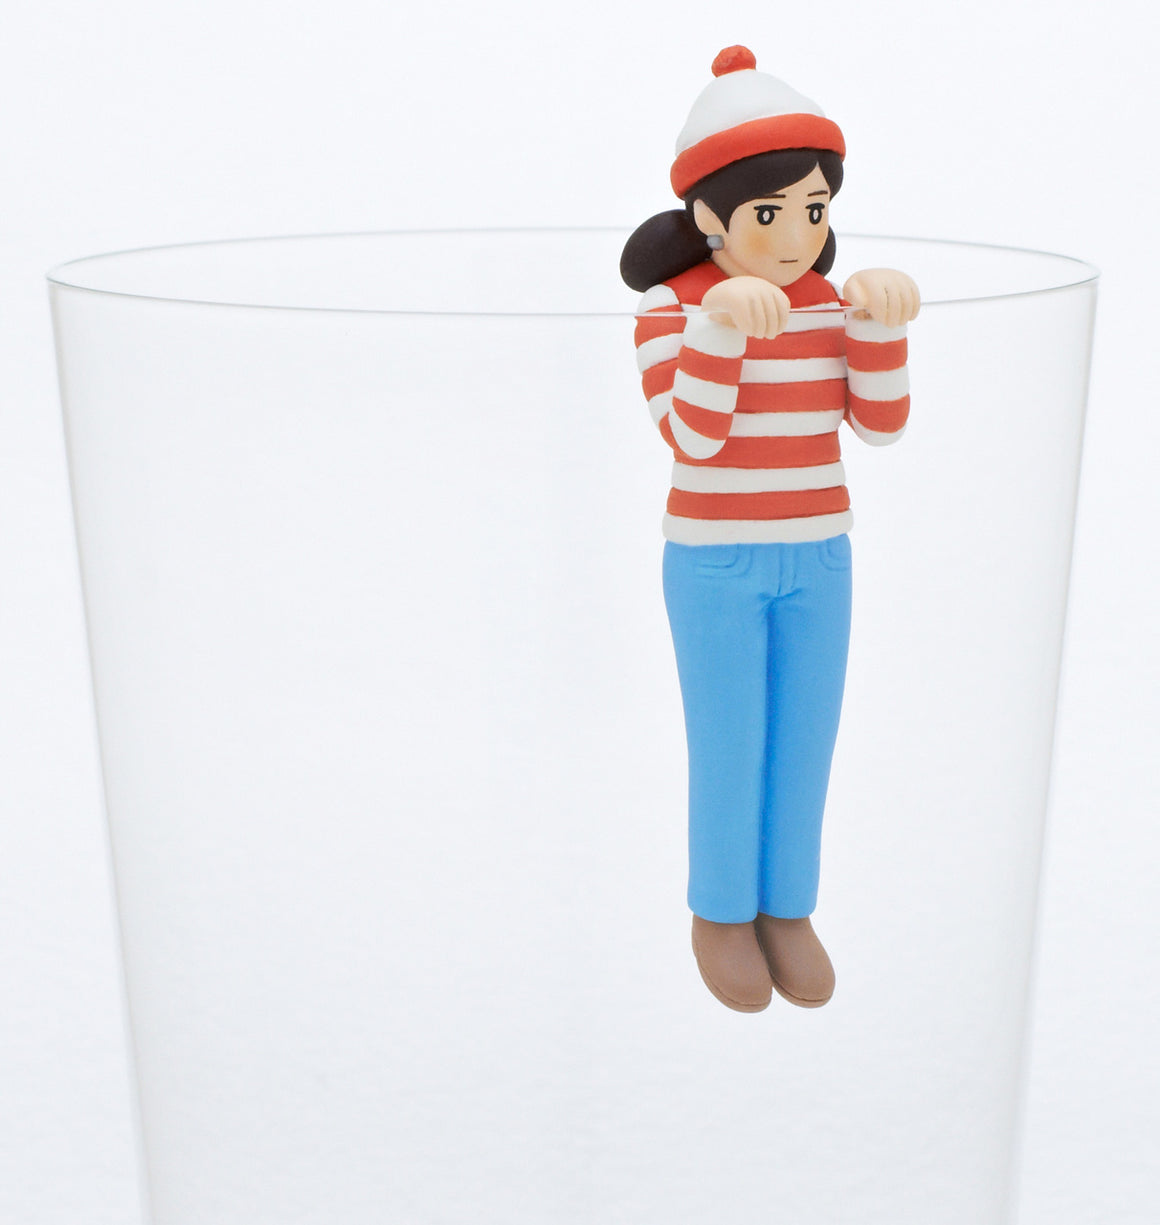 Fuchico Where's Wally (Waldo) Blind Box Series 1